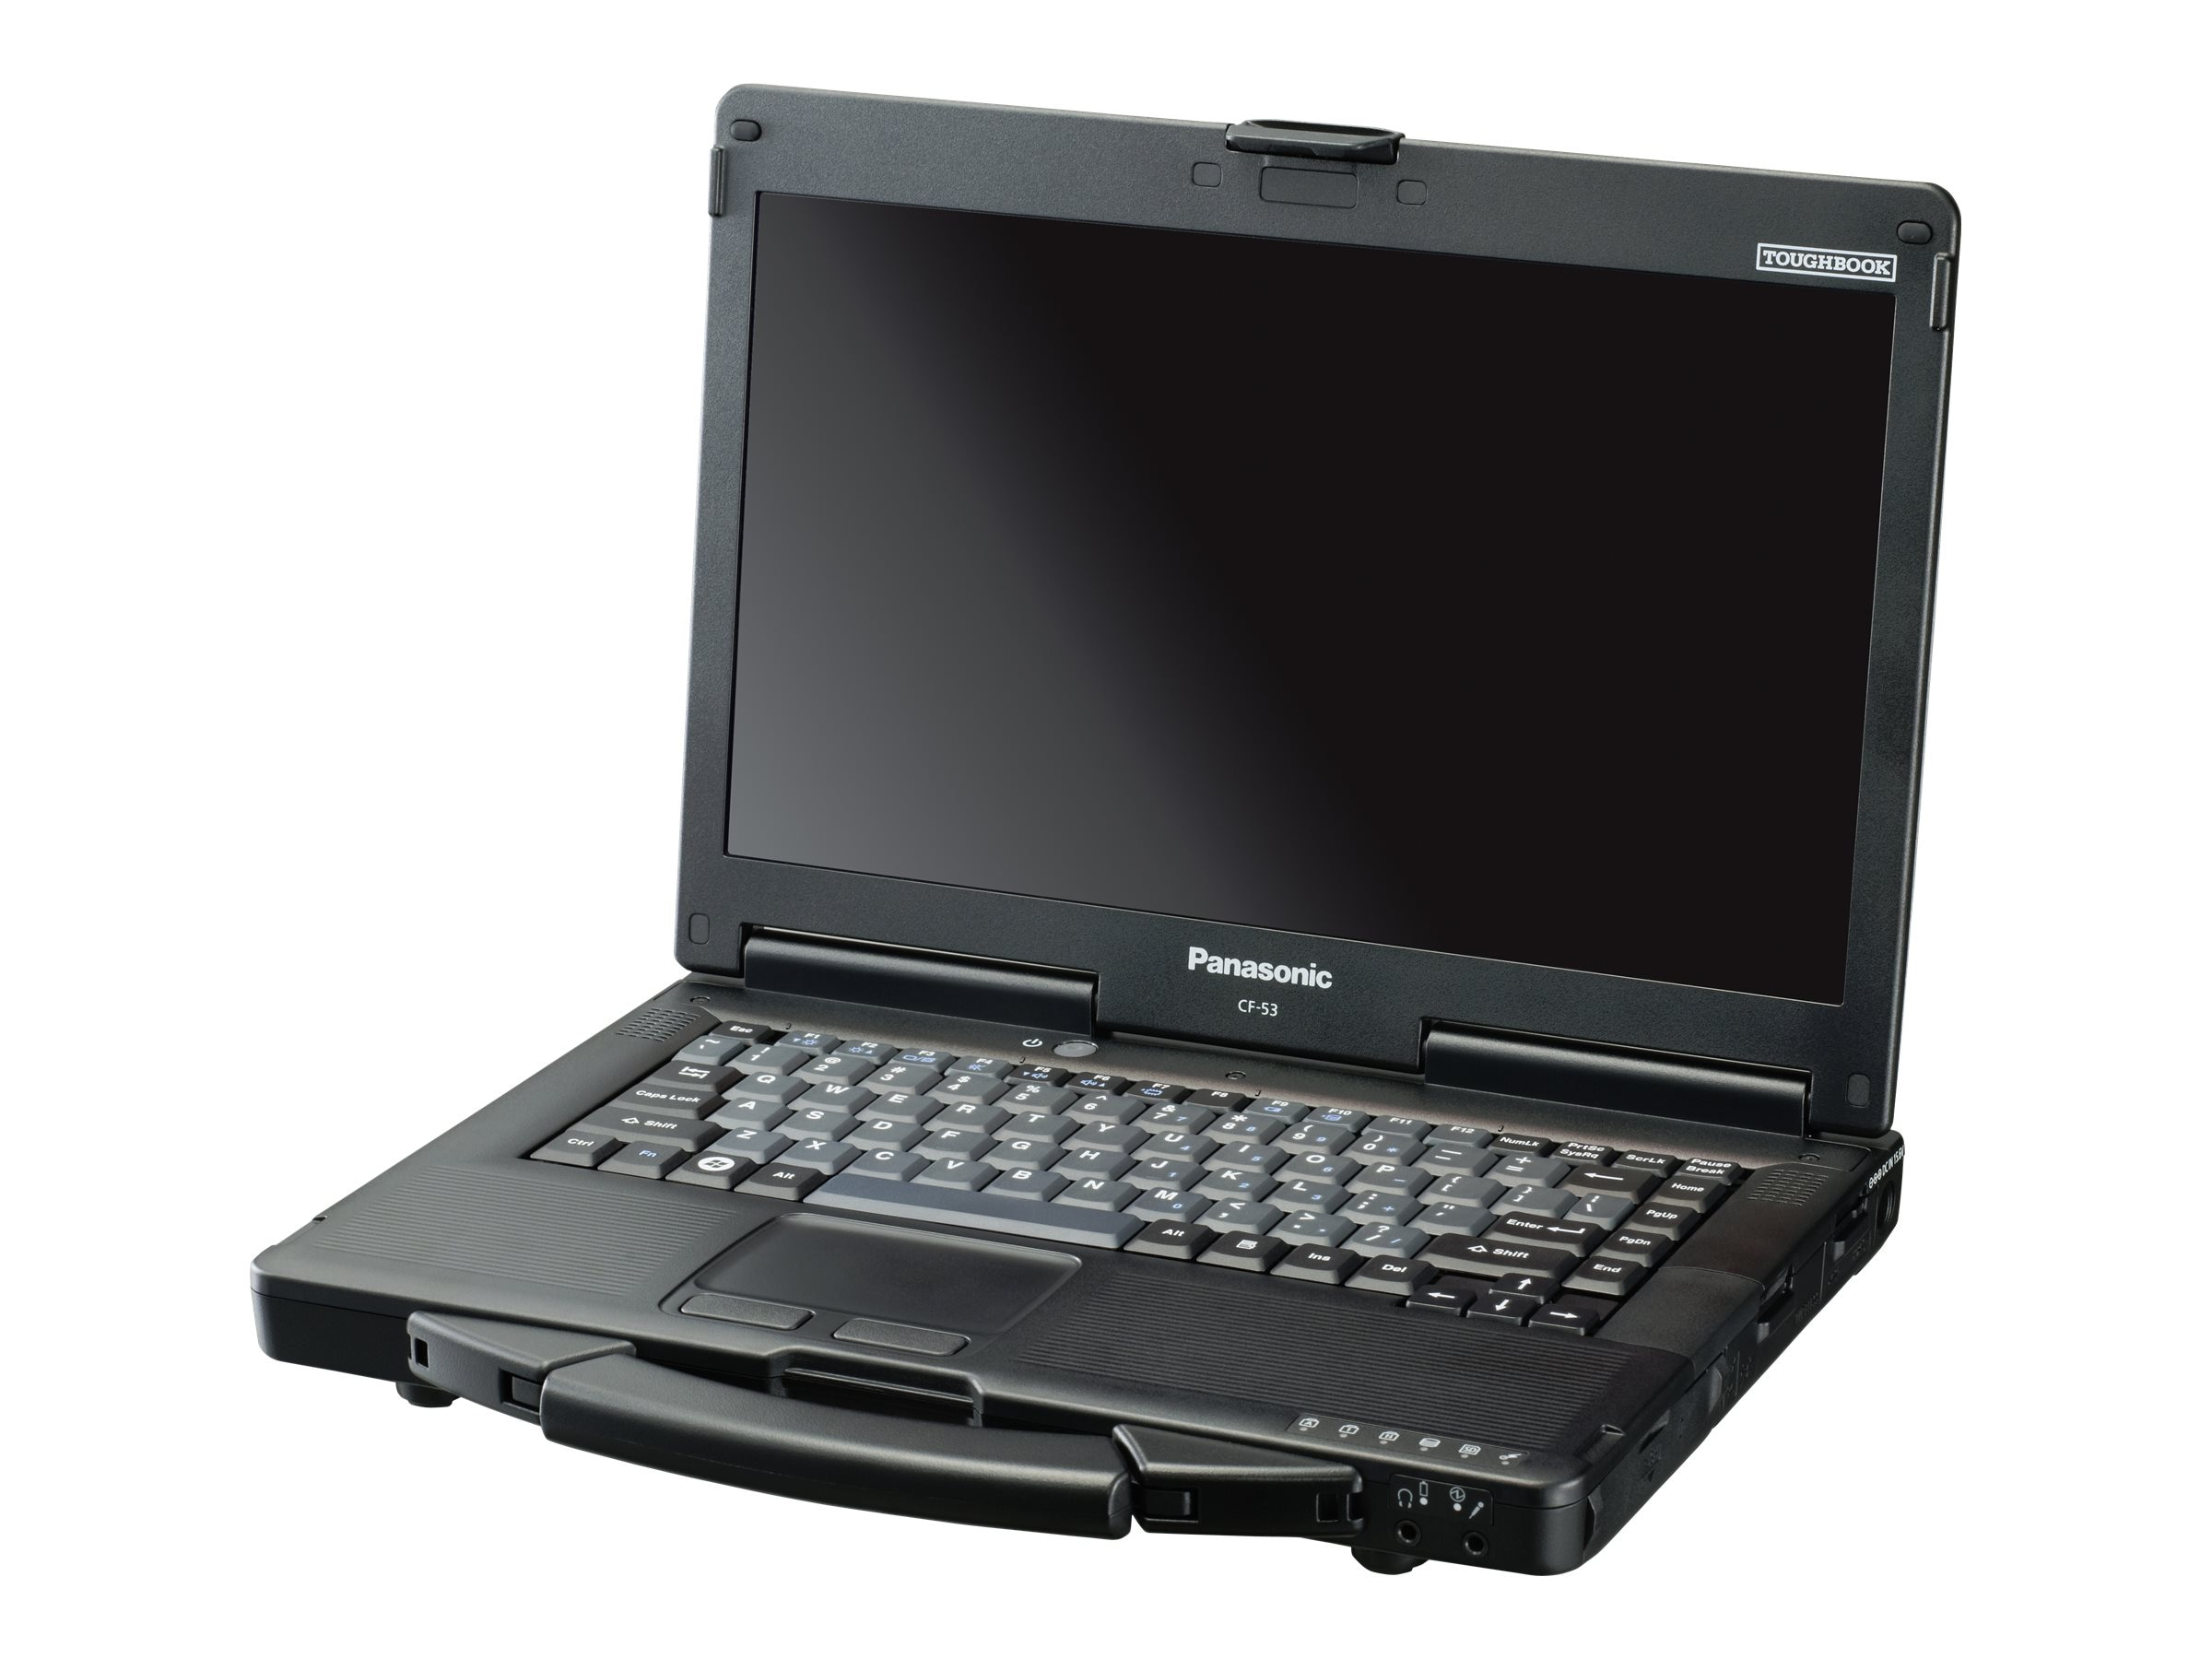 Panasonic Toughbook 53 2.1GHz Core i7 14in display